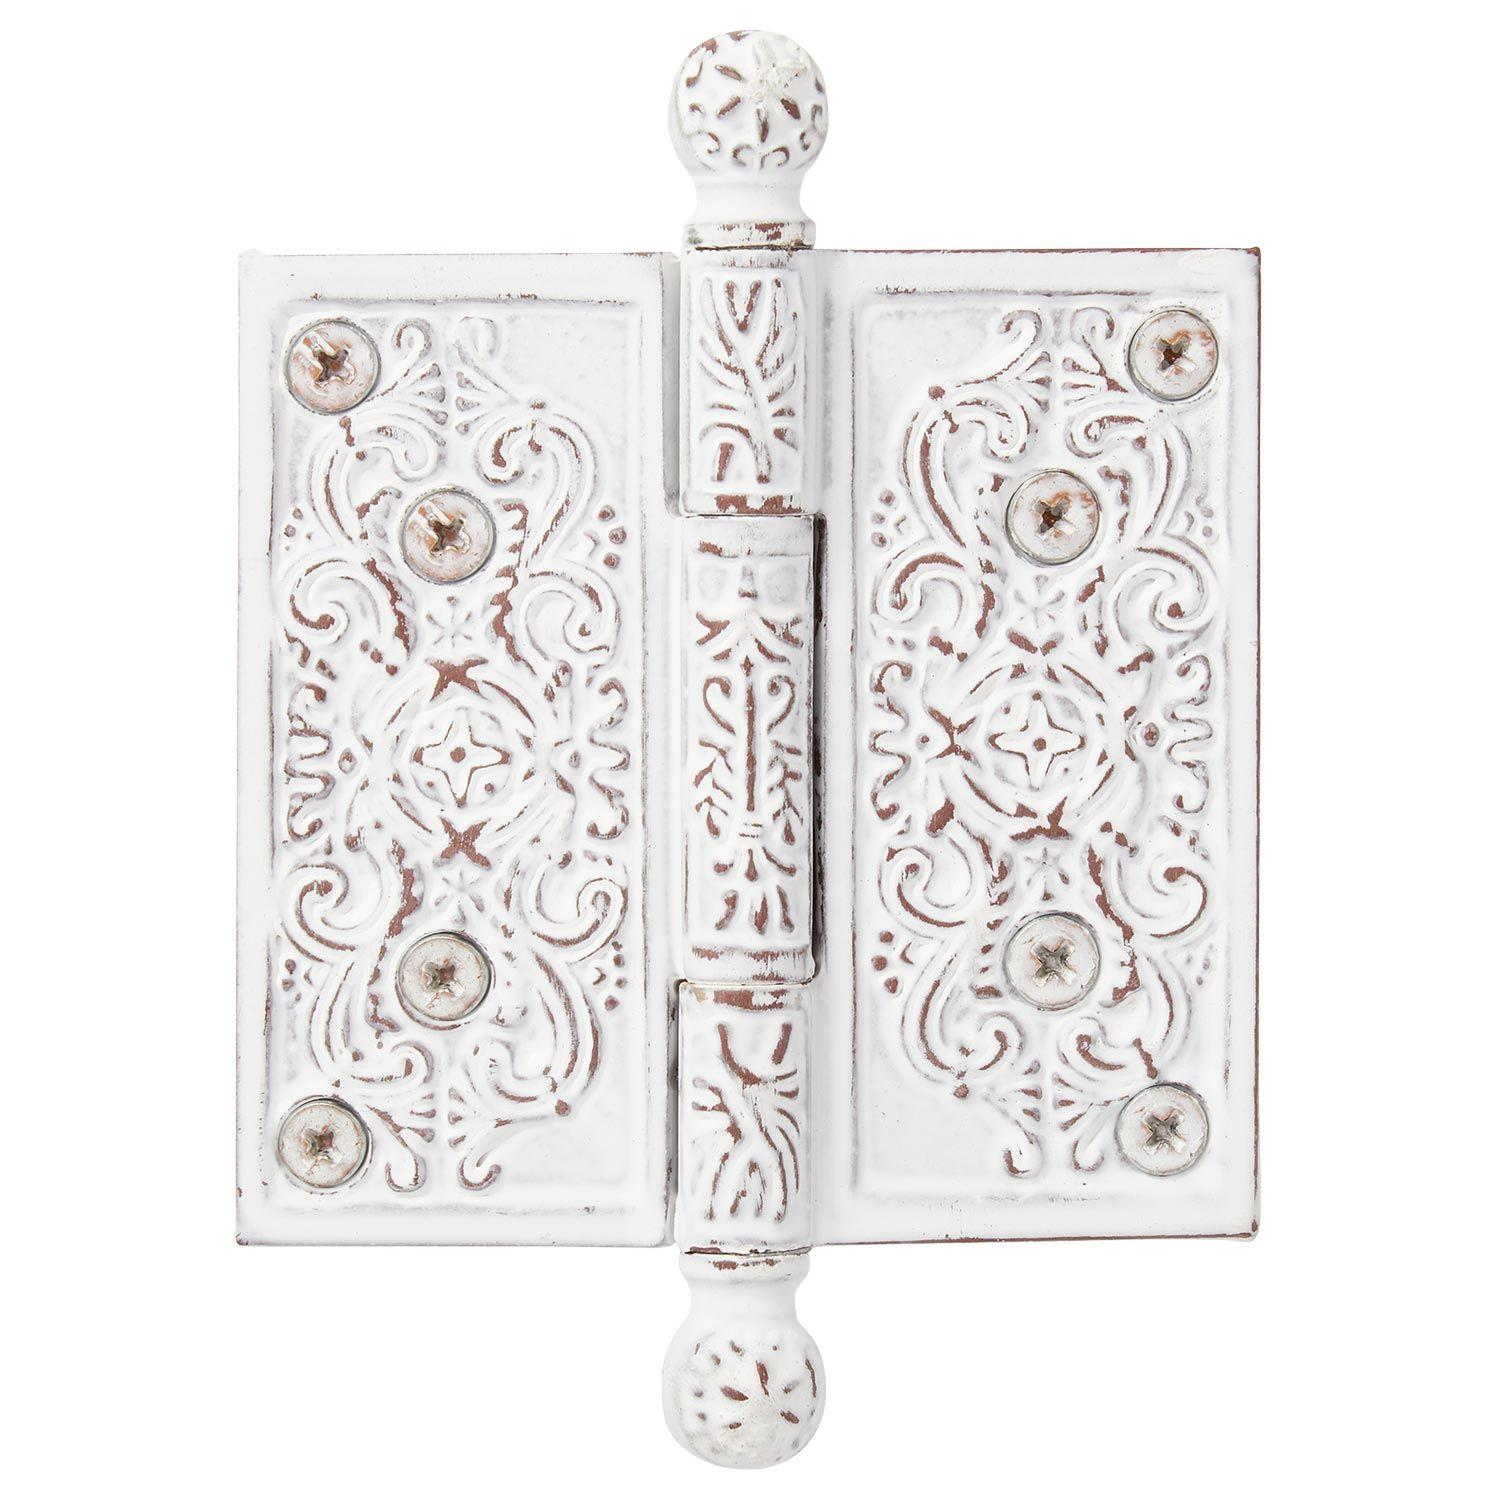 Antique Pattern Hinge Black American Style 85mm Cold Rolled Steel Decorative Door and Window Hinge Suitable for Doors and Windows Cabinets